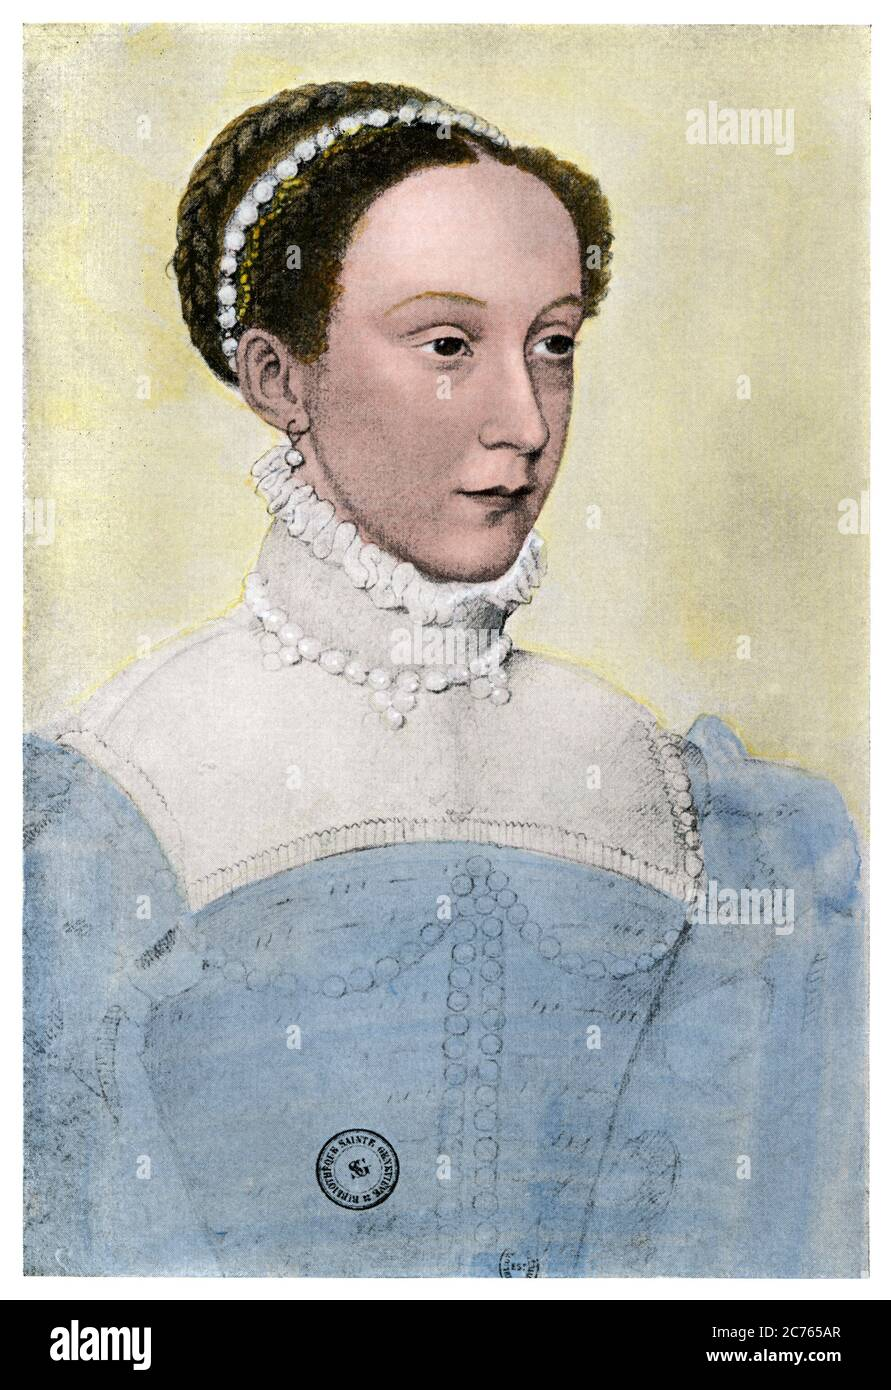 Mary Stuart as Queen Consort of France. Hand-colored halftone of an illustration by Francois Coljet Stock Photo